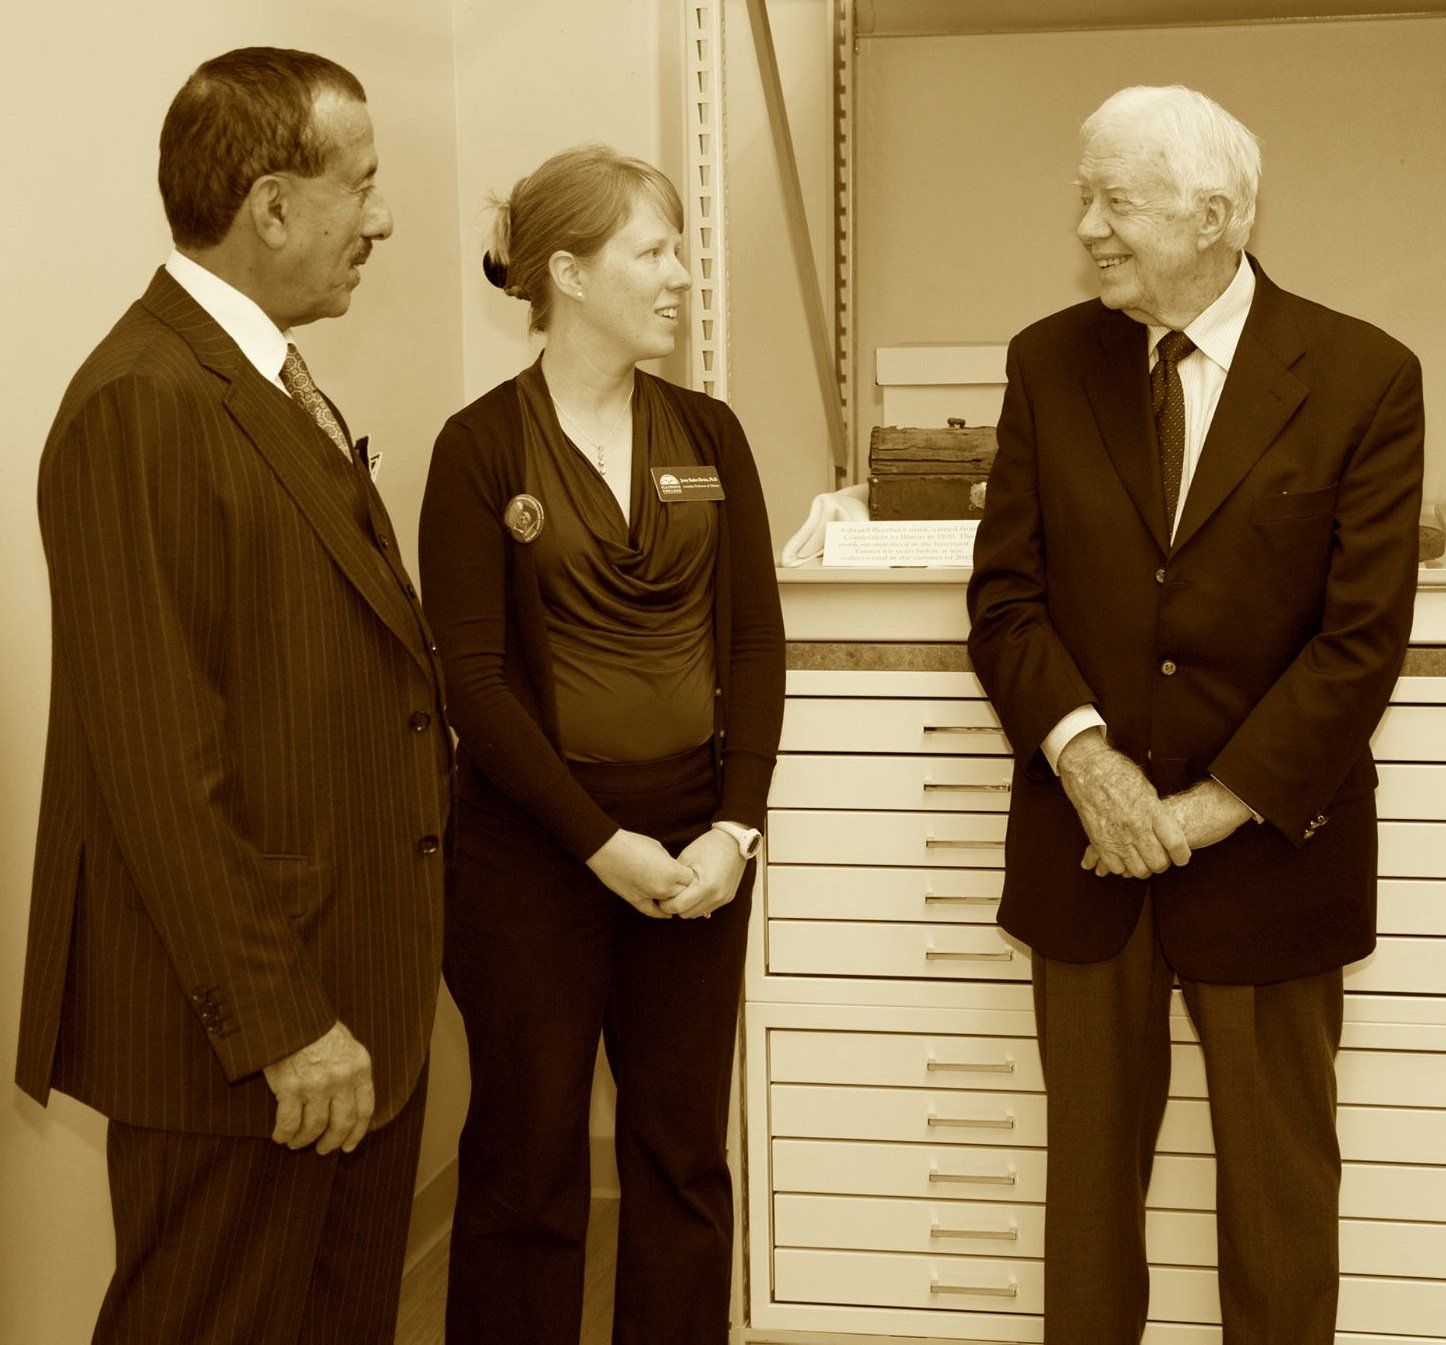 This picture shows Dr. Khalaf Al Habtoor (left), Professor Jenny Barker-Devine (middle), and former president Jimmy Carter on the day the archives where dedicated. Taken from within the archives.